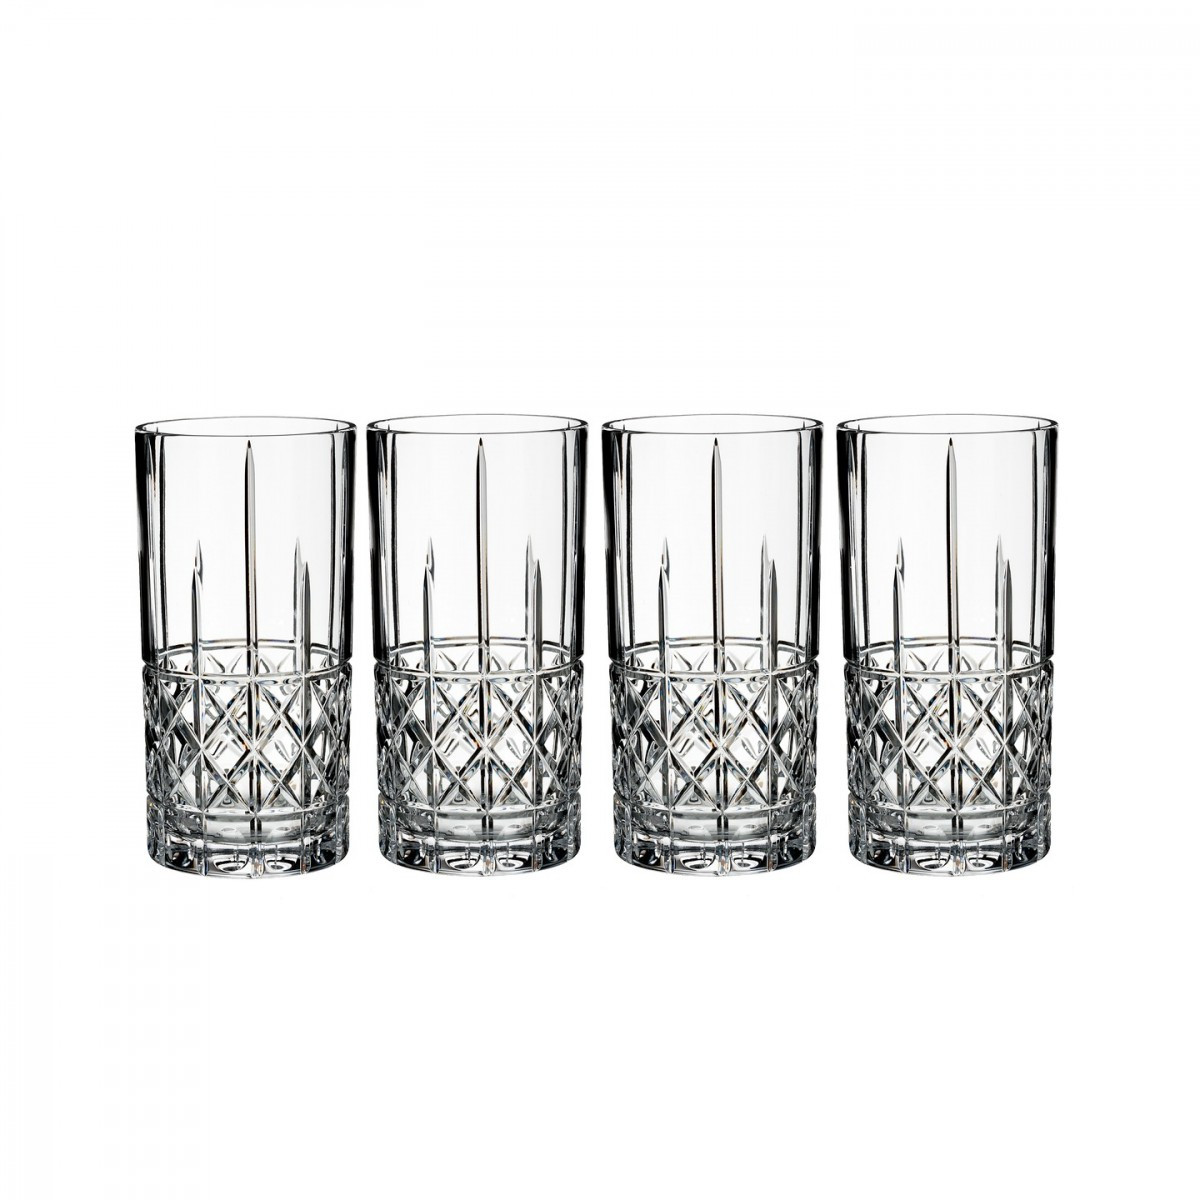 marquis by waterford 9 markham vase of brady hiball set of 4 marquis by waterford us pertaining to brady hiball set of 4